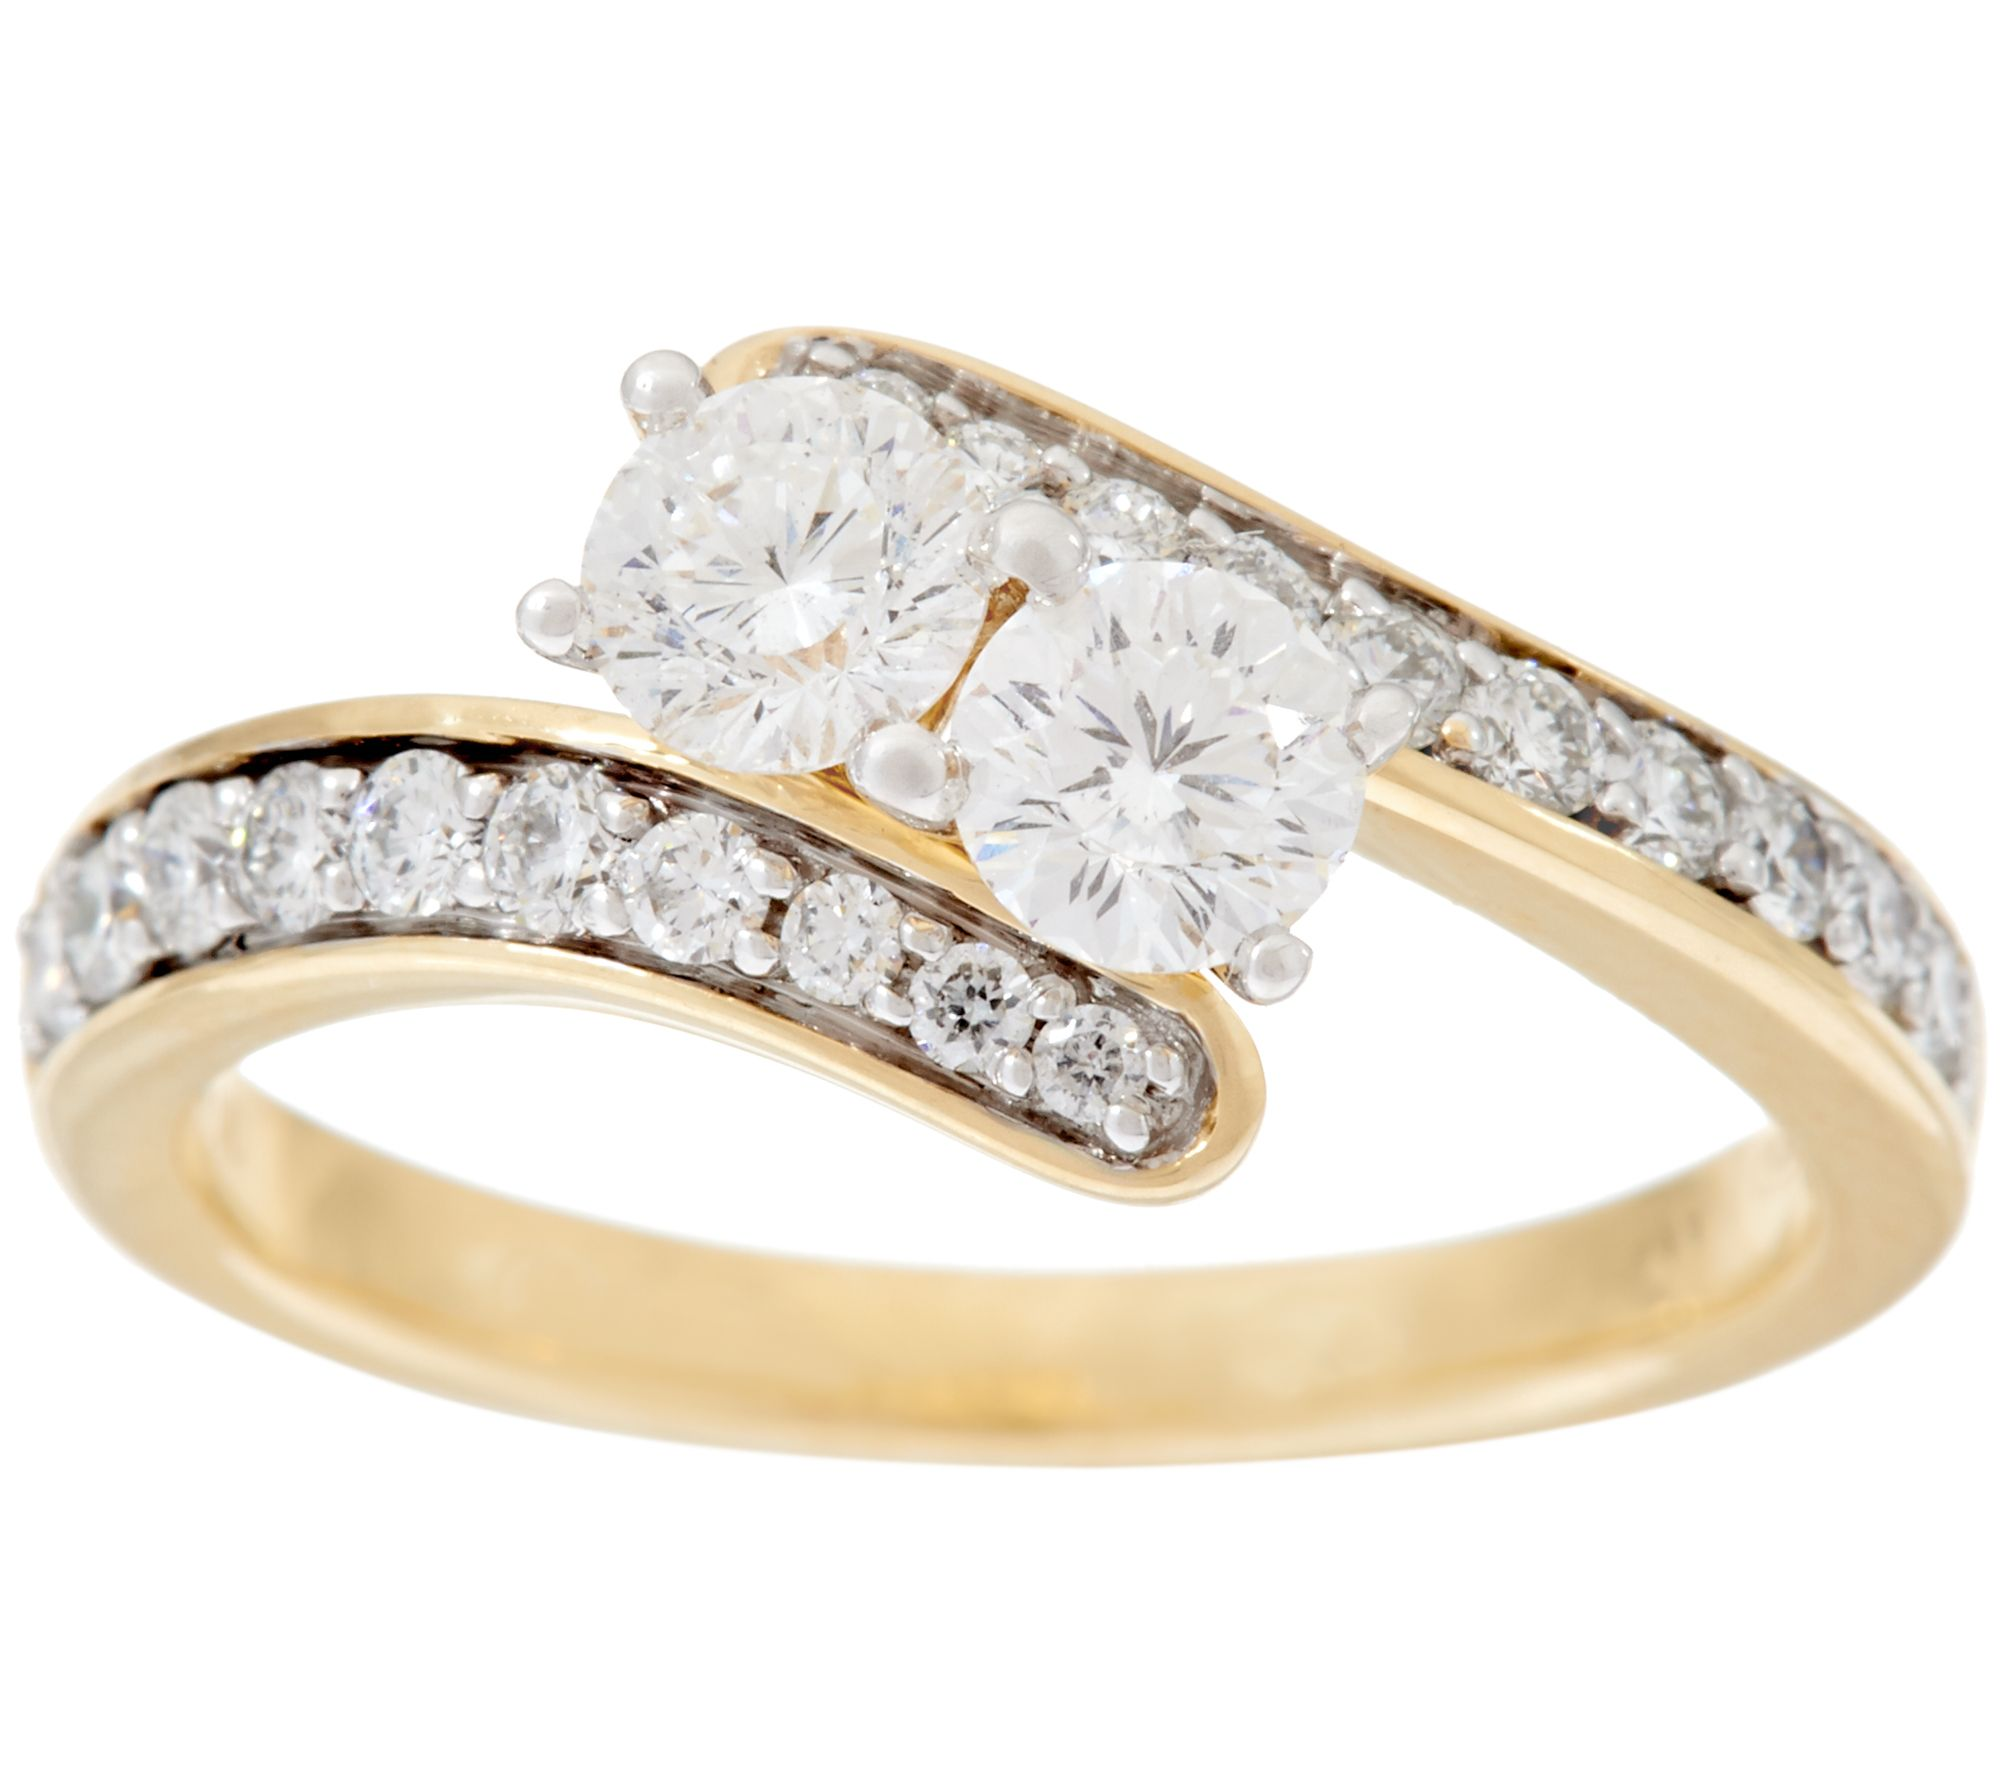 98 facet two stone diamond ring cttw 14k by